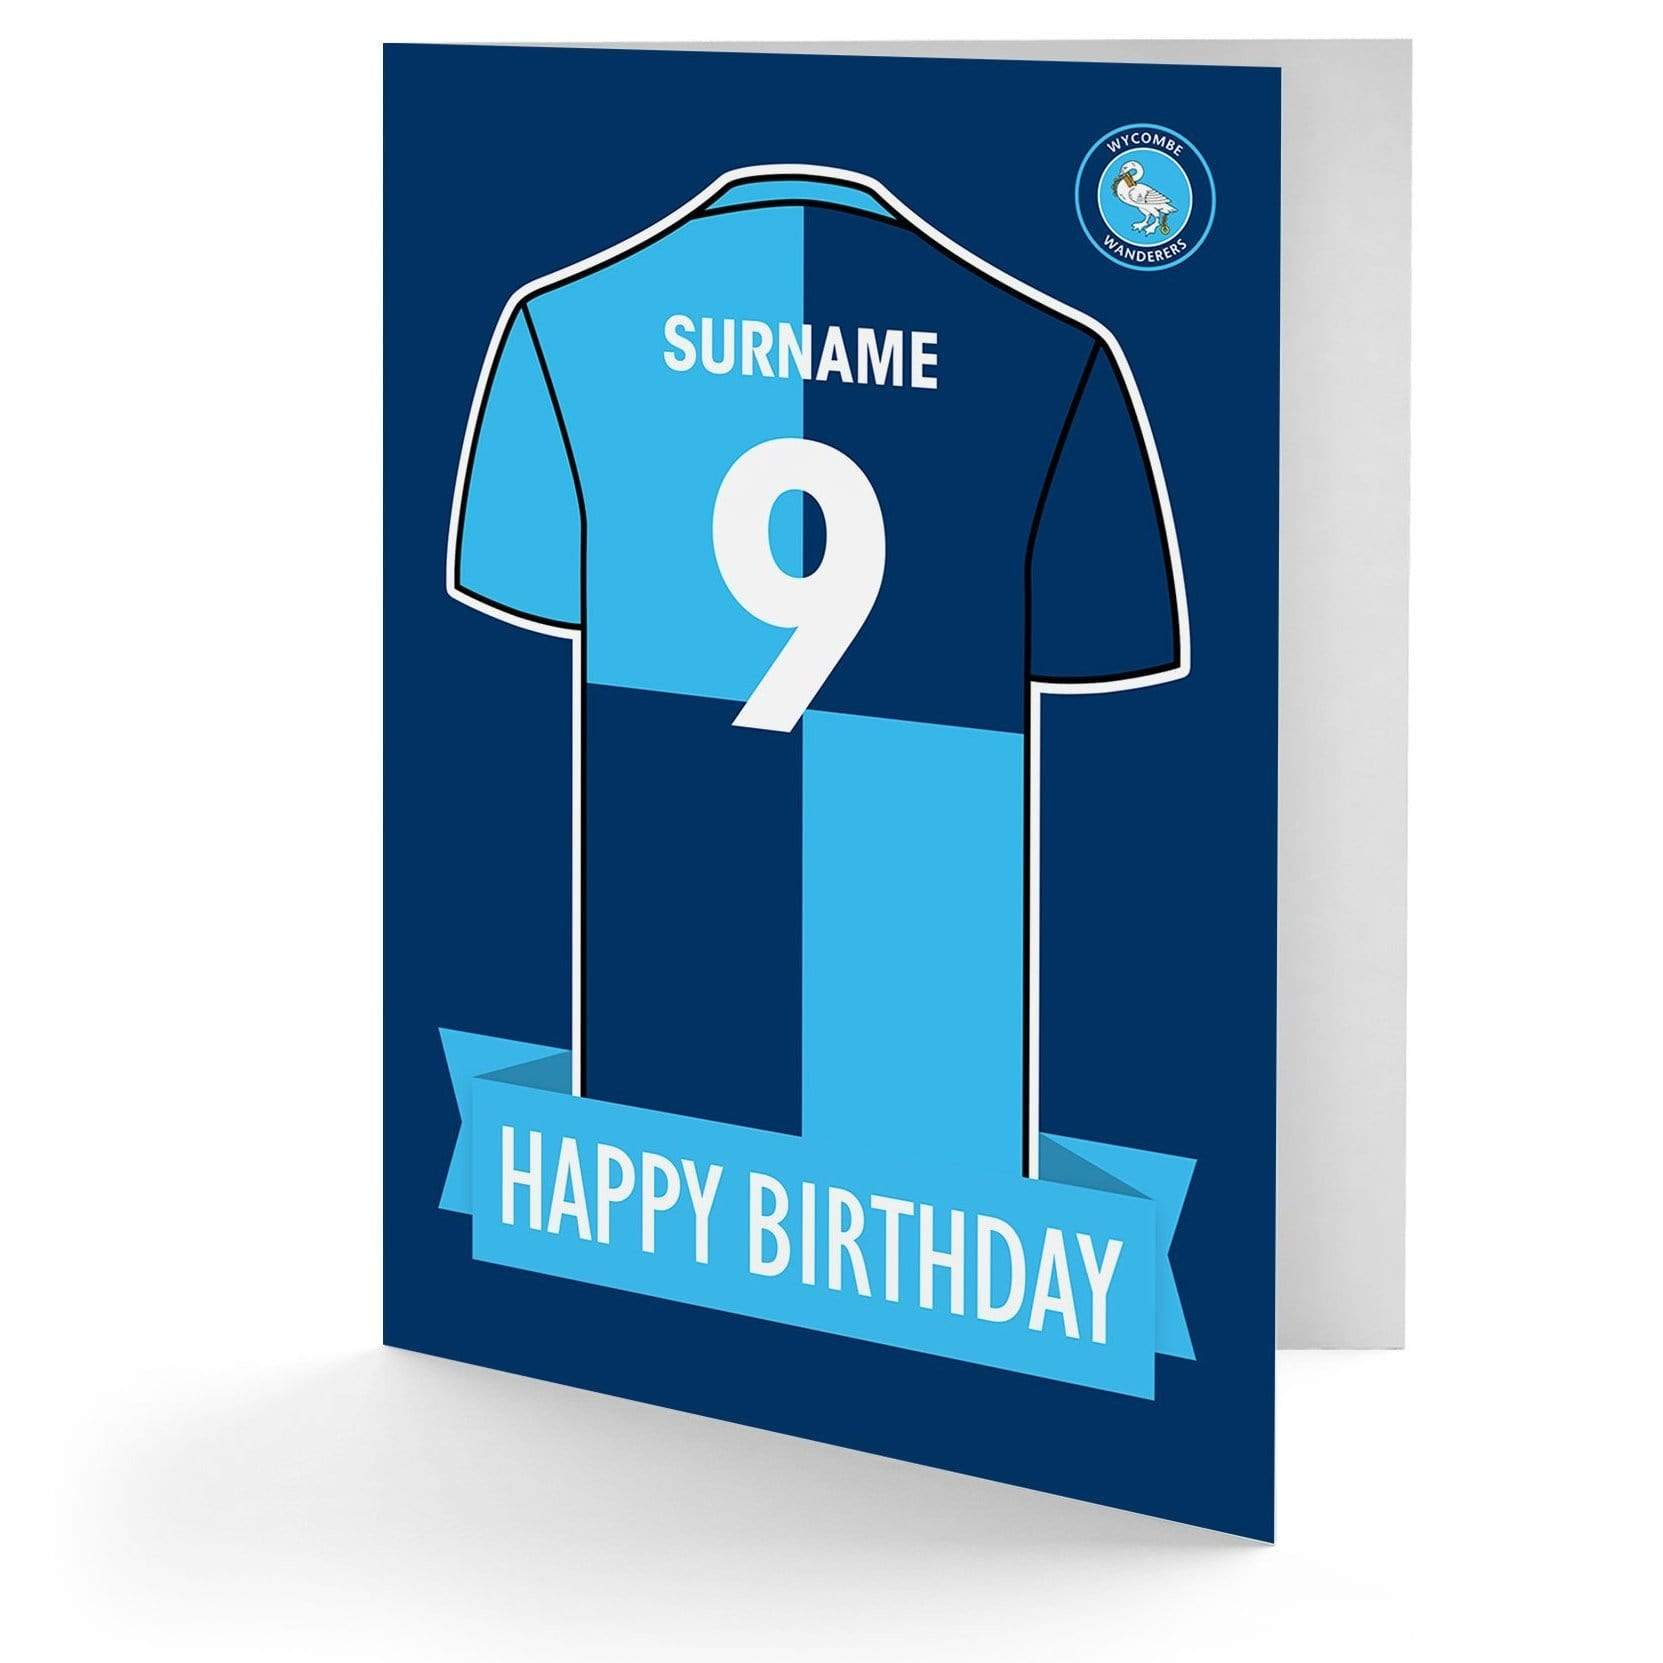 Personalised Greetings Card SHIRT Wycombe Wanderers F.C